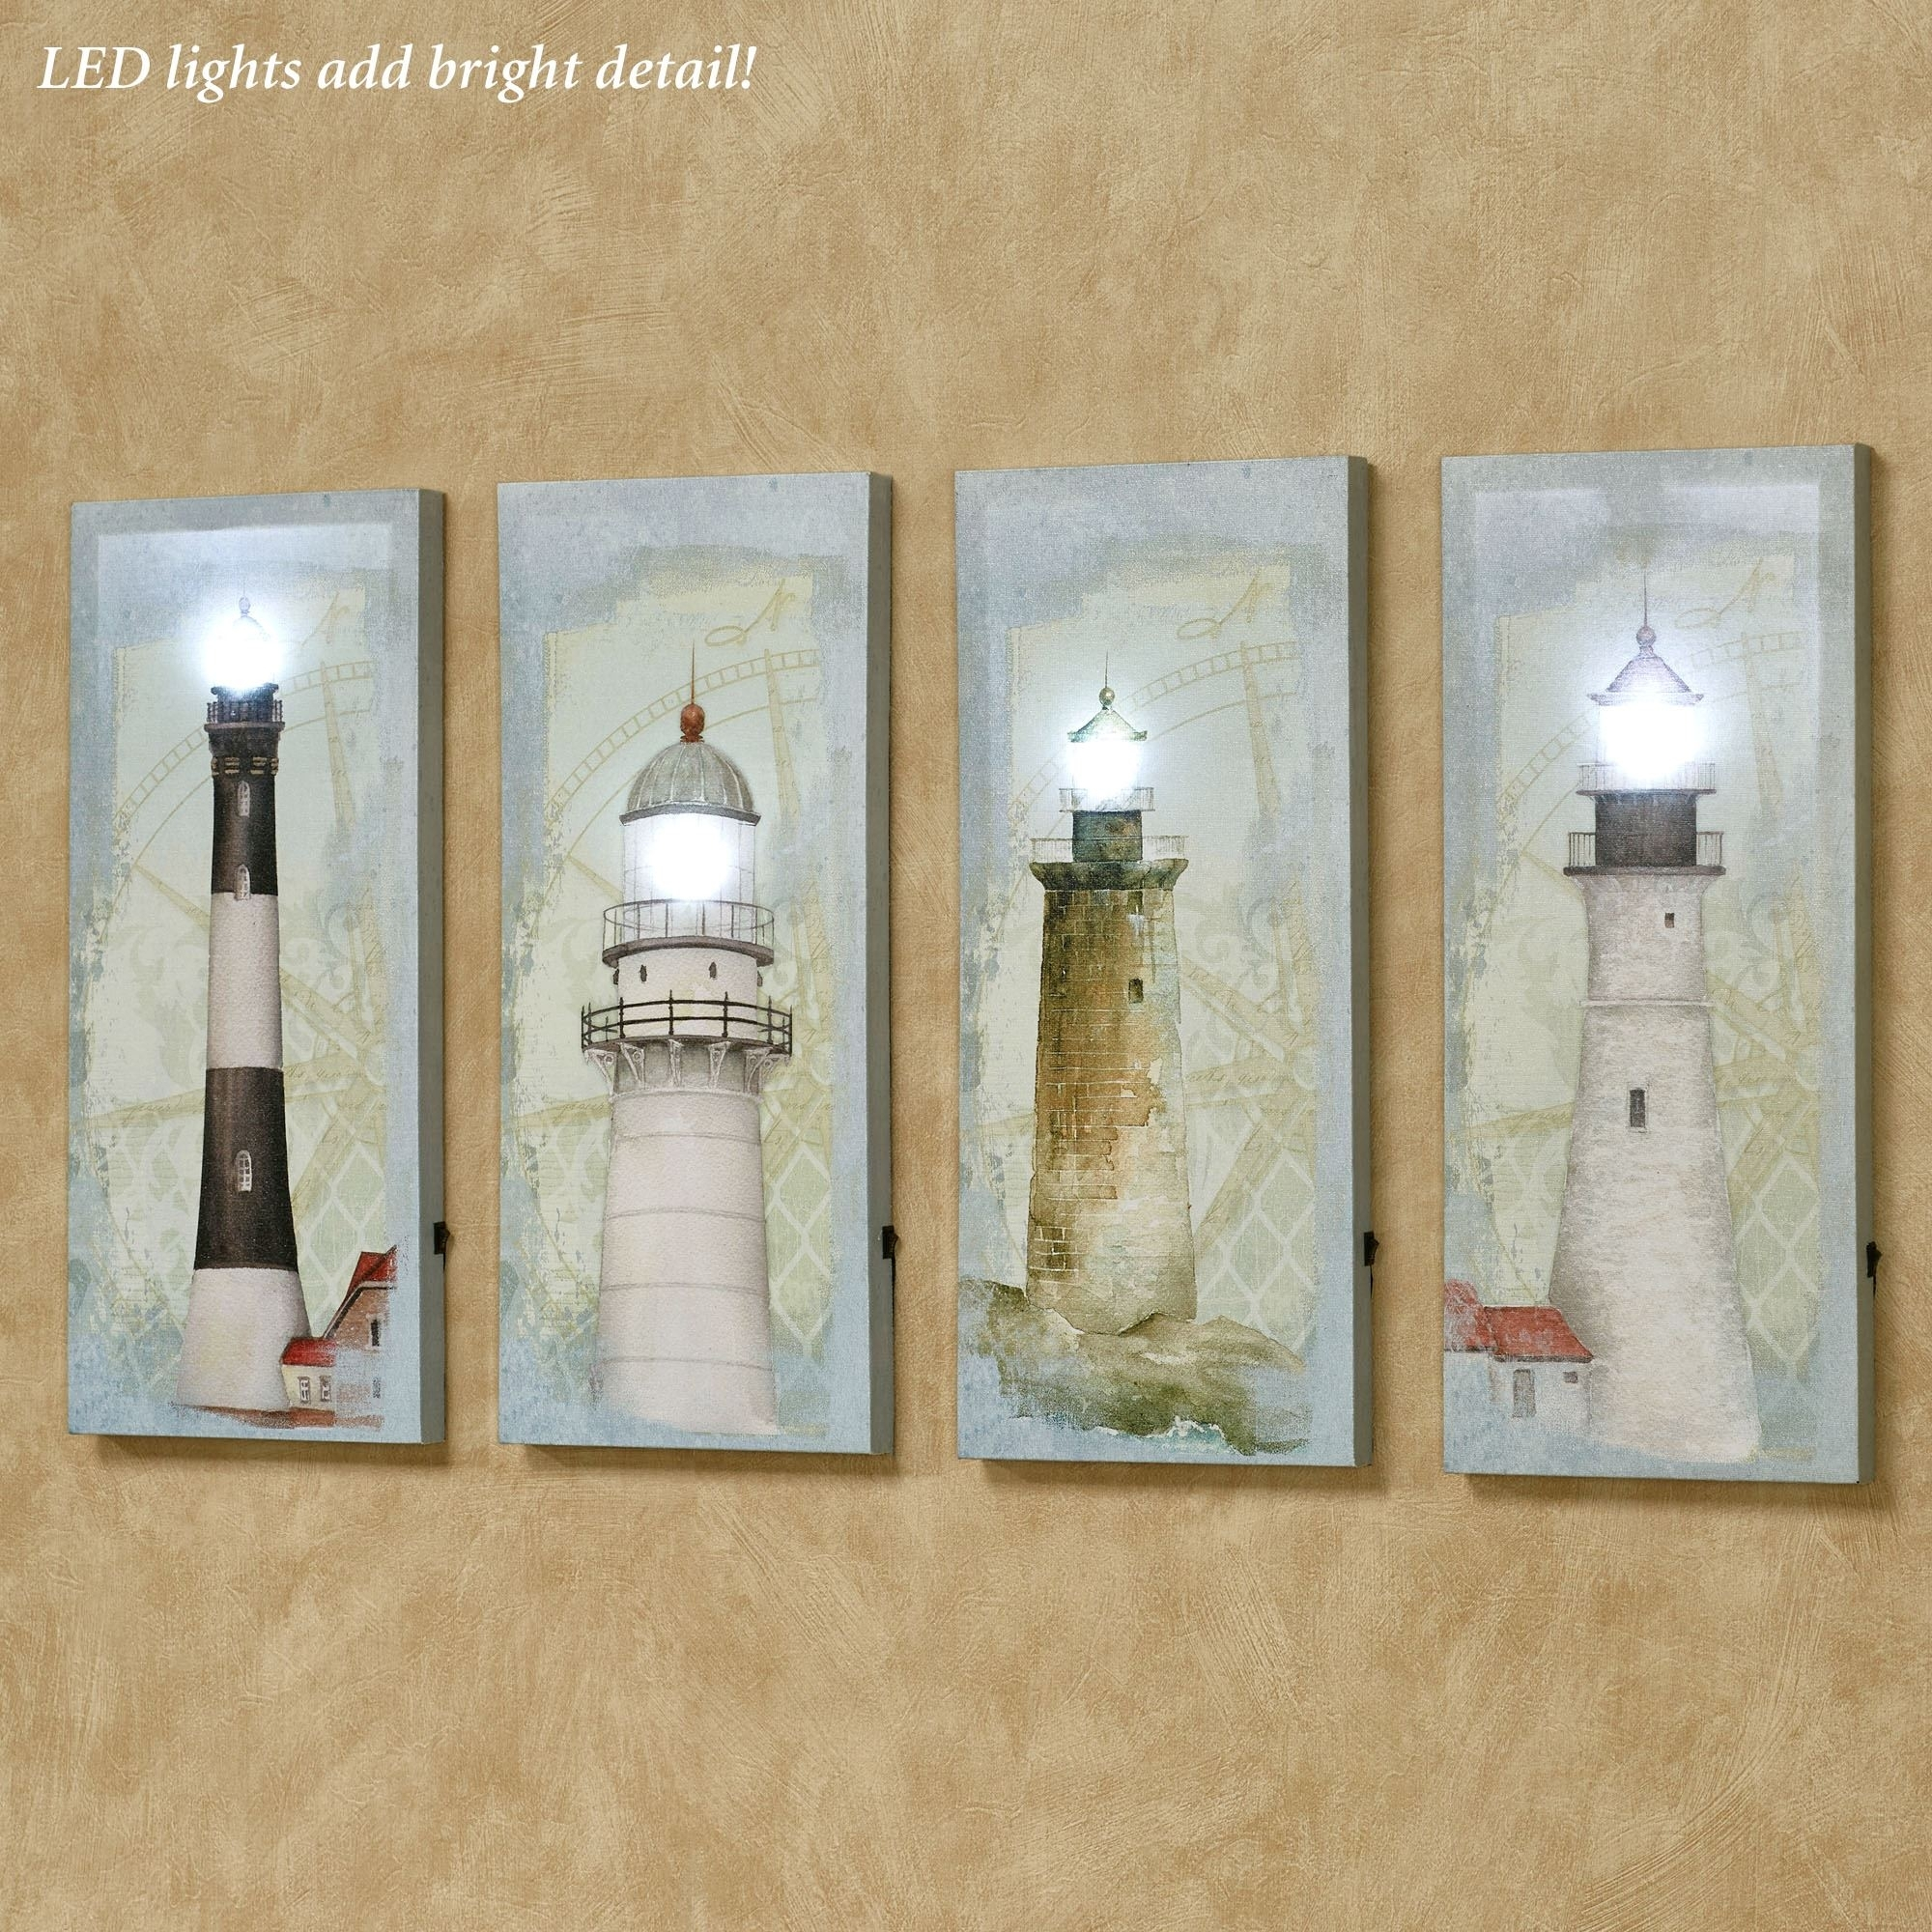 Coastal Lighthouse Led Lighted Canvas Wall Art Set Regarding 2017 Lighted Canvas Wall Art (View 15 of 15)